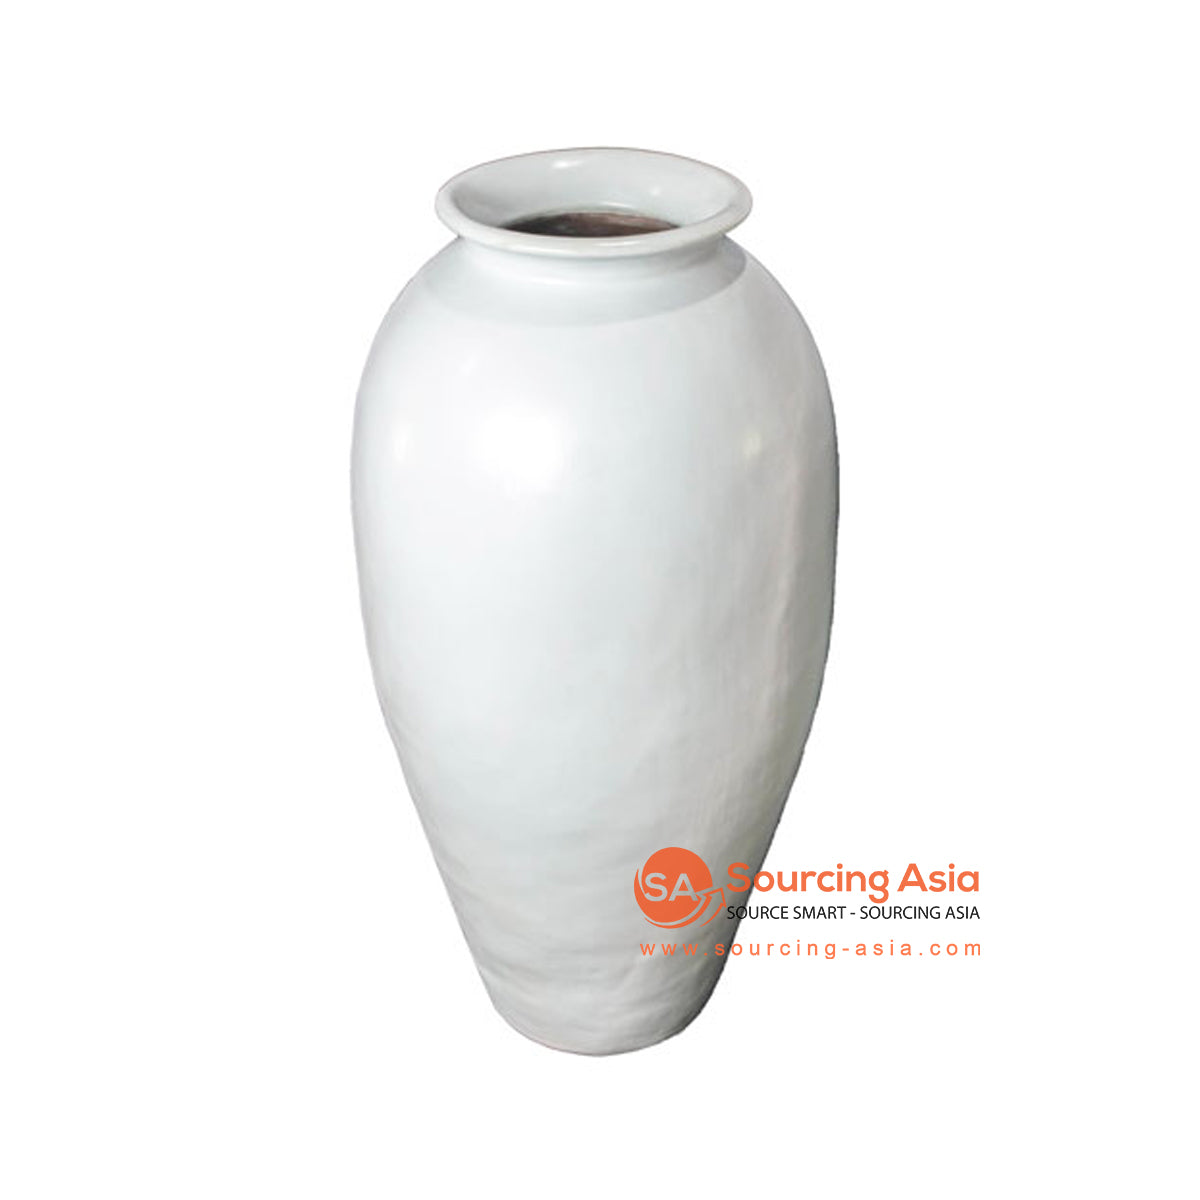 SHL207-9 WHITE TERRACOTTA VASE